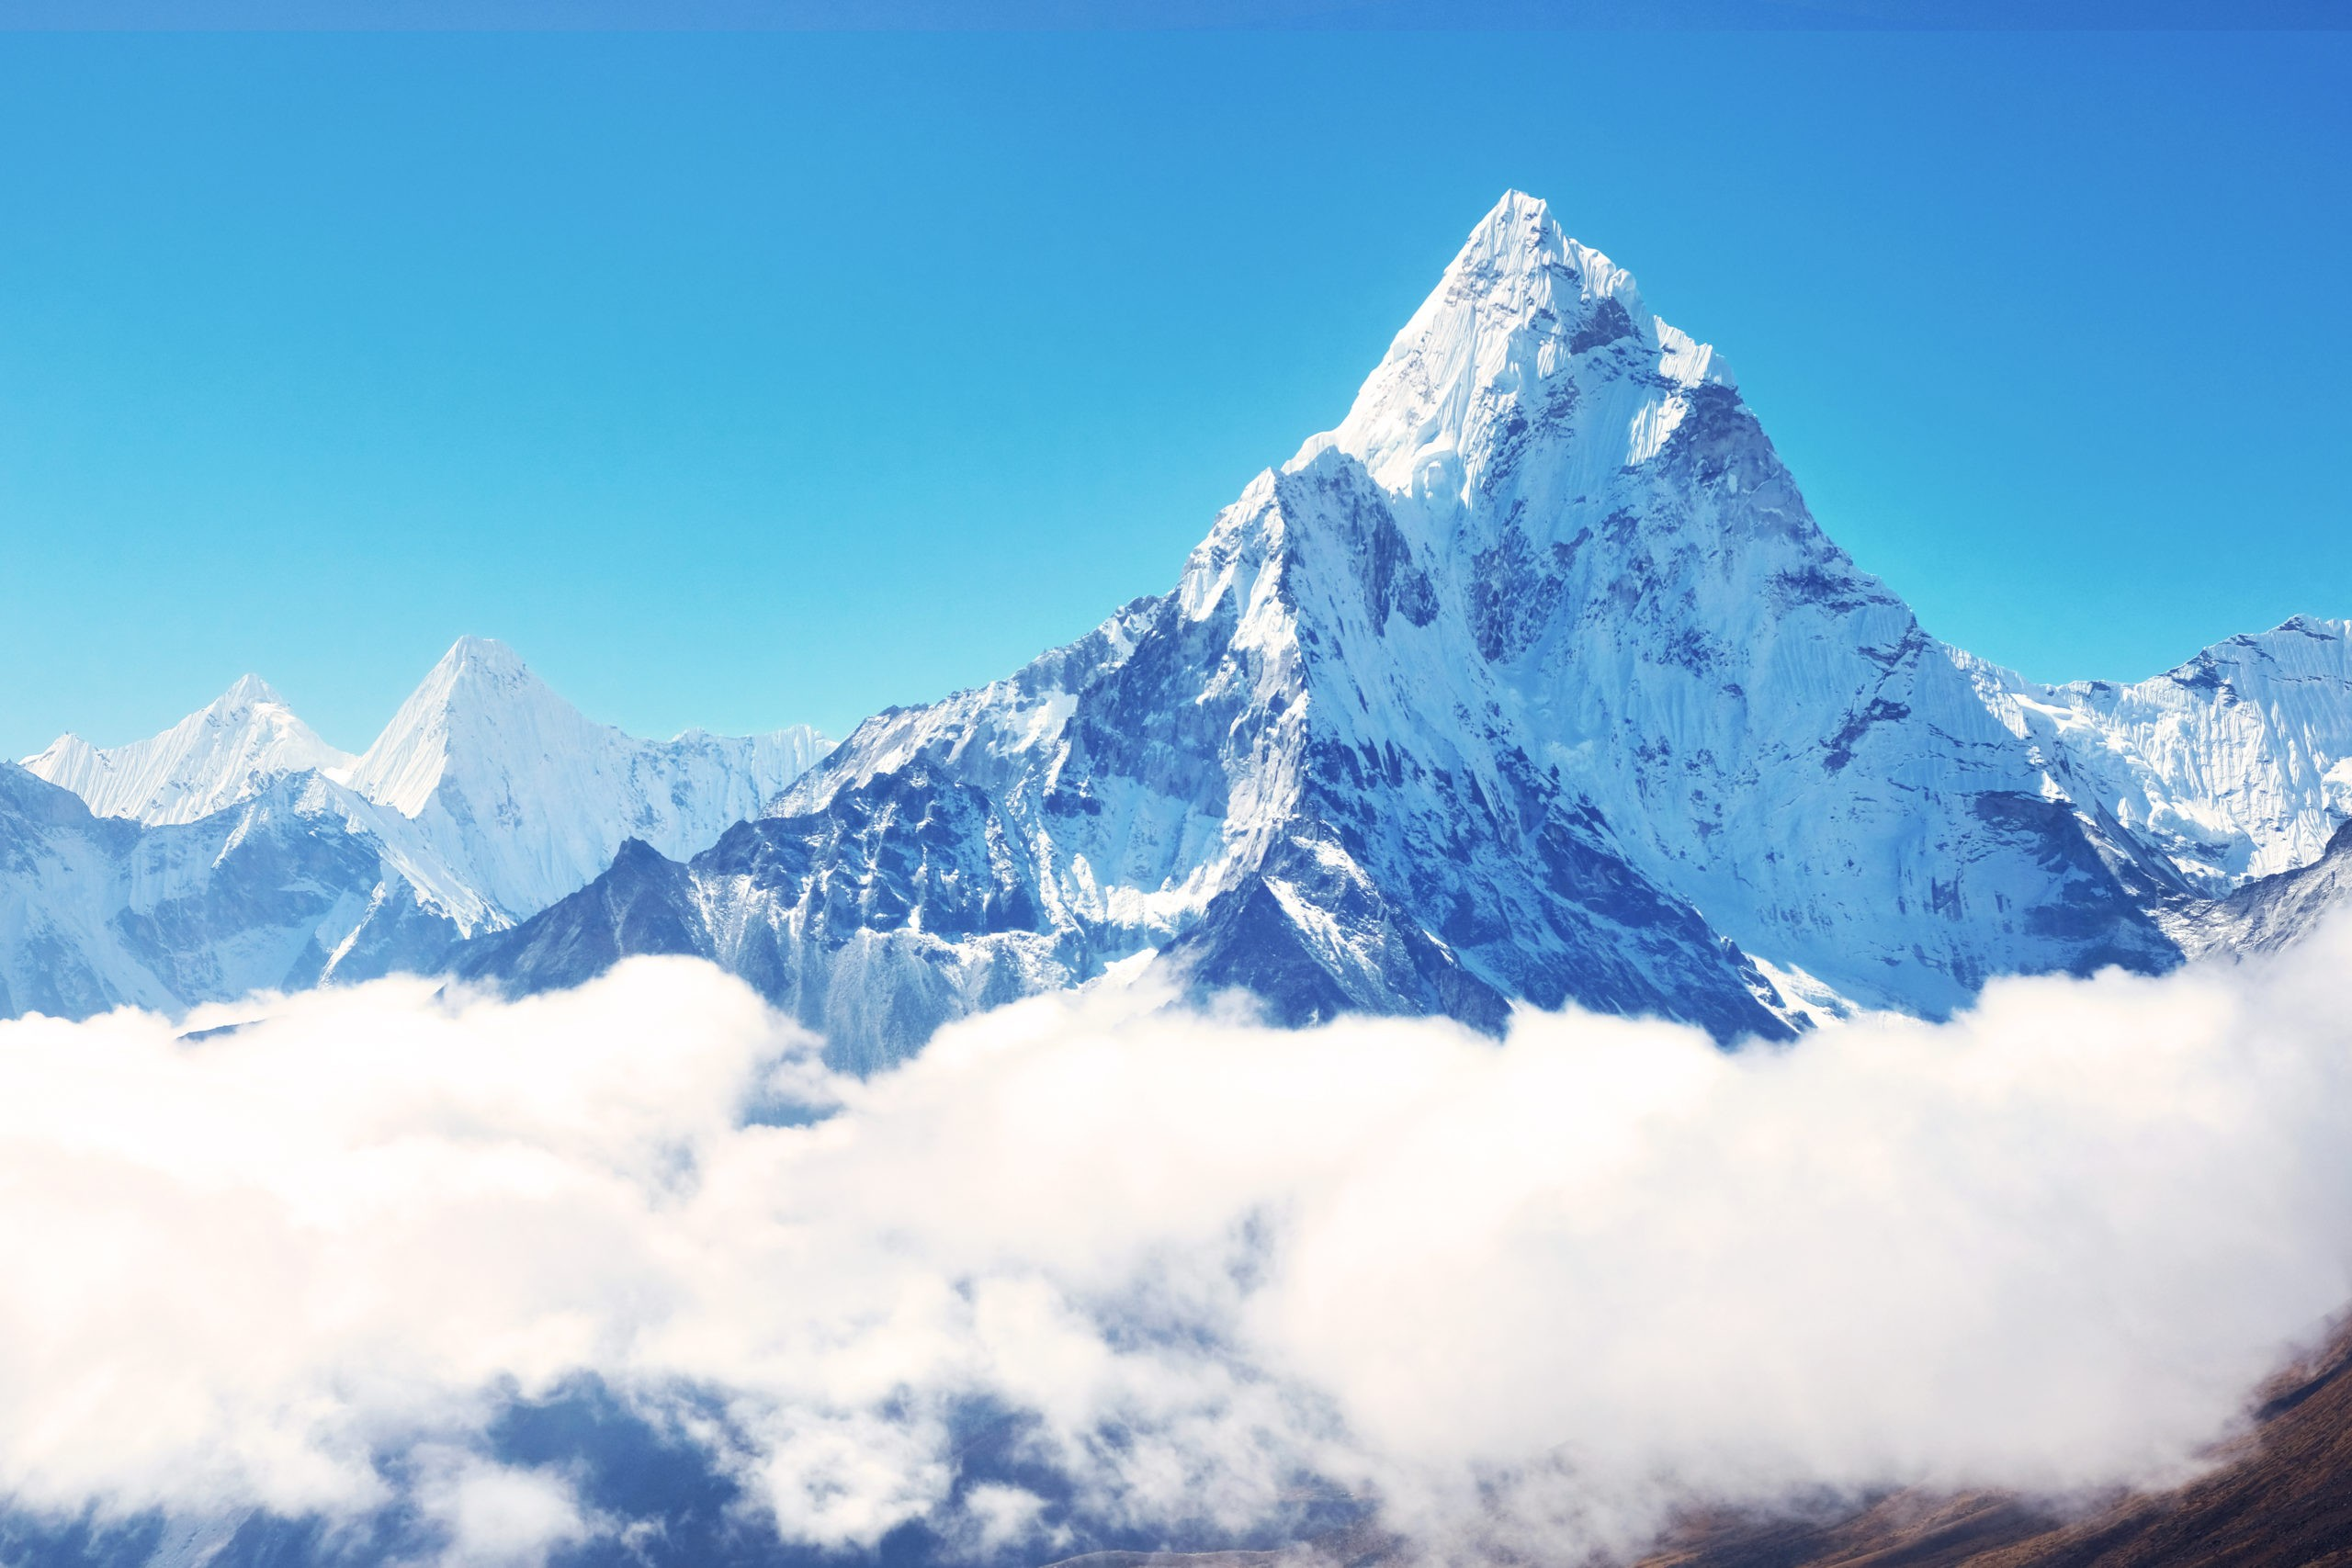 Background image of a mountain